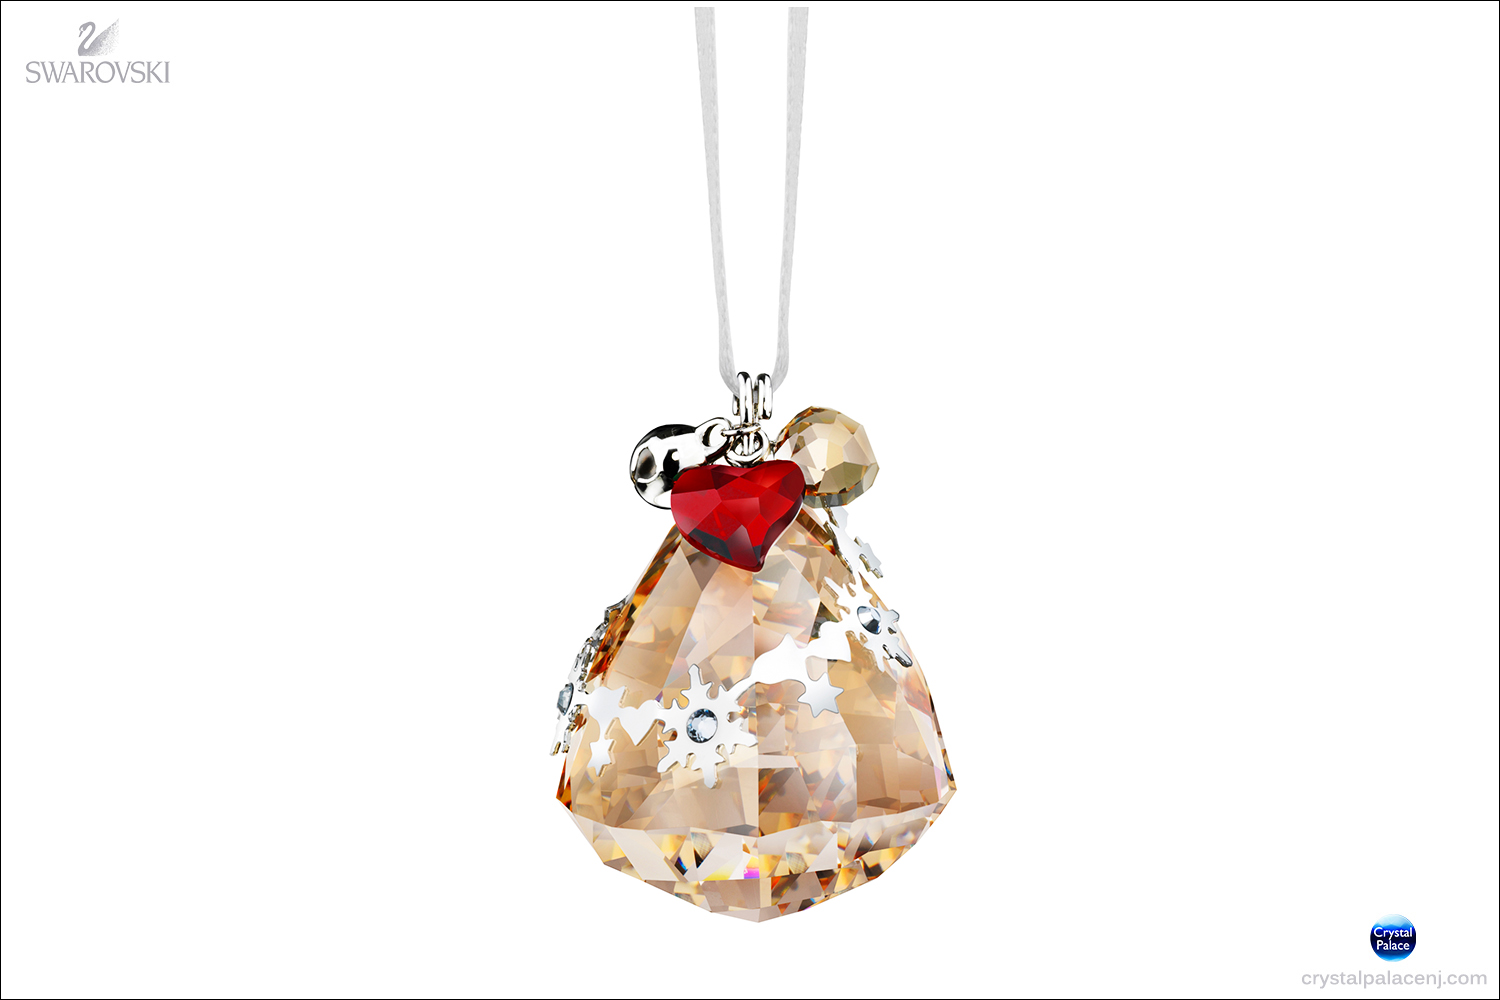 Swarovski Christmas Ornaments Part - 41: (SOLD OUT) Swarovski Christmas Ornament, Crystal Golden Shadow